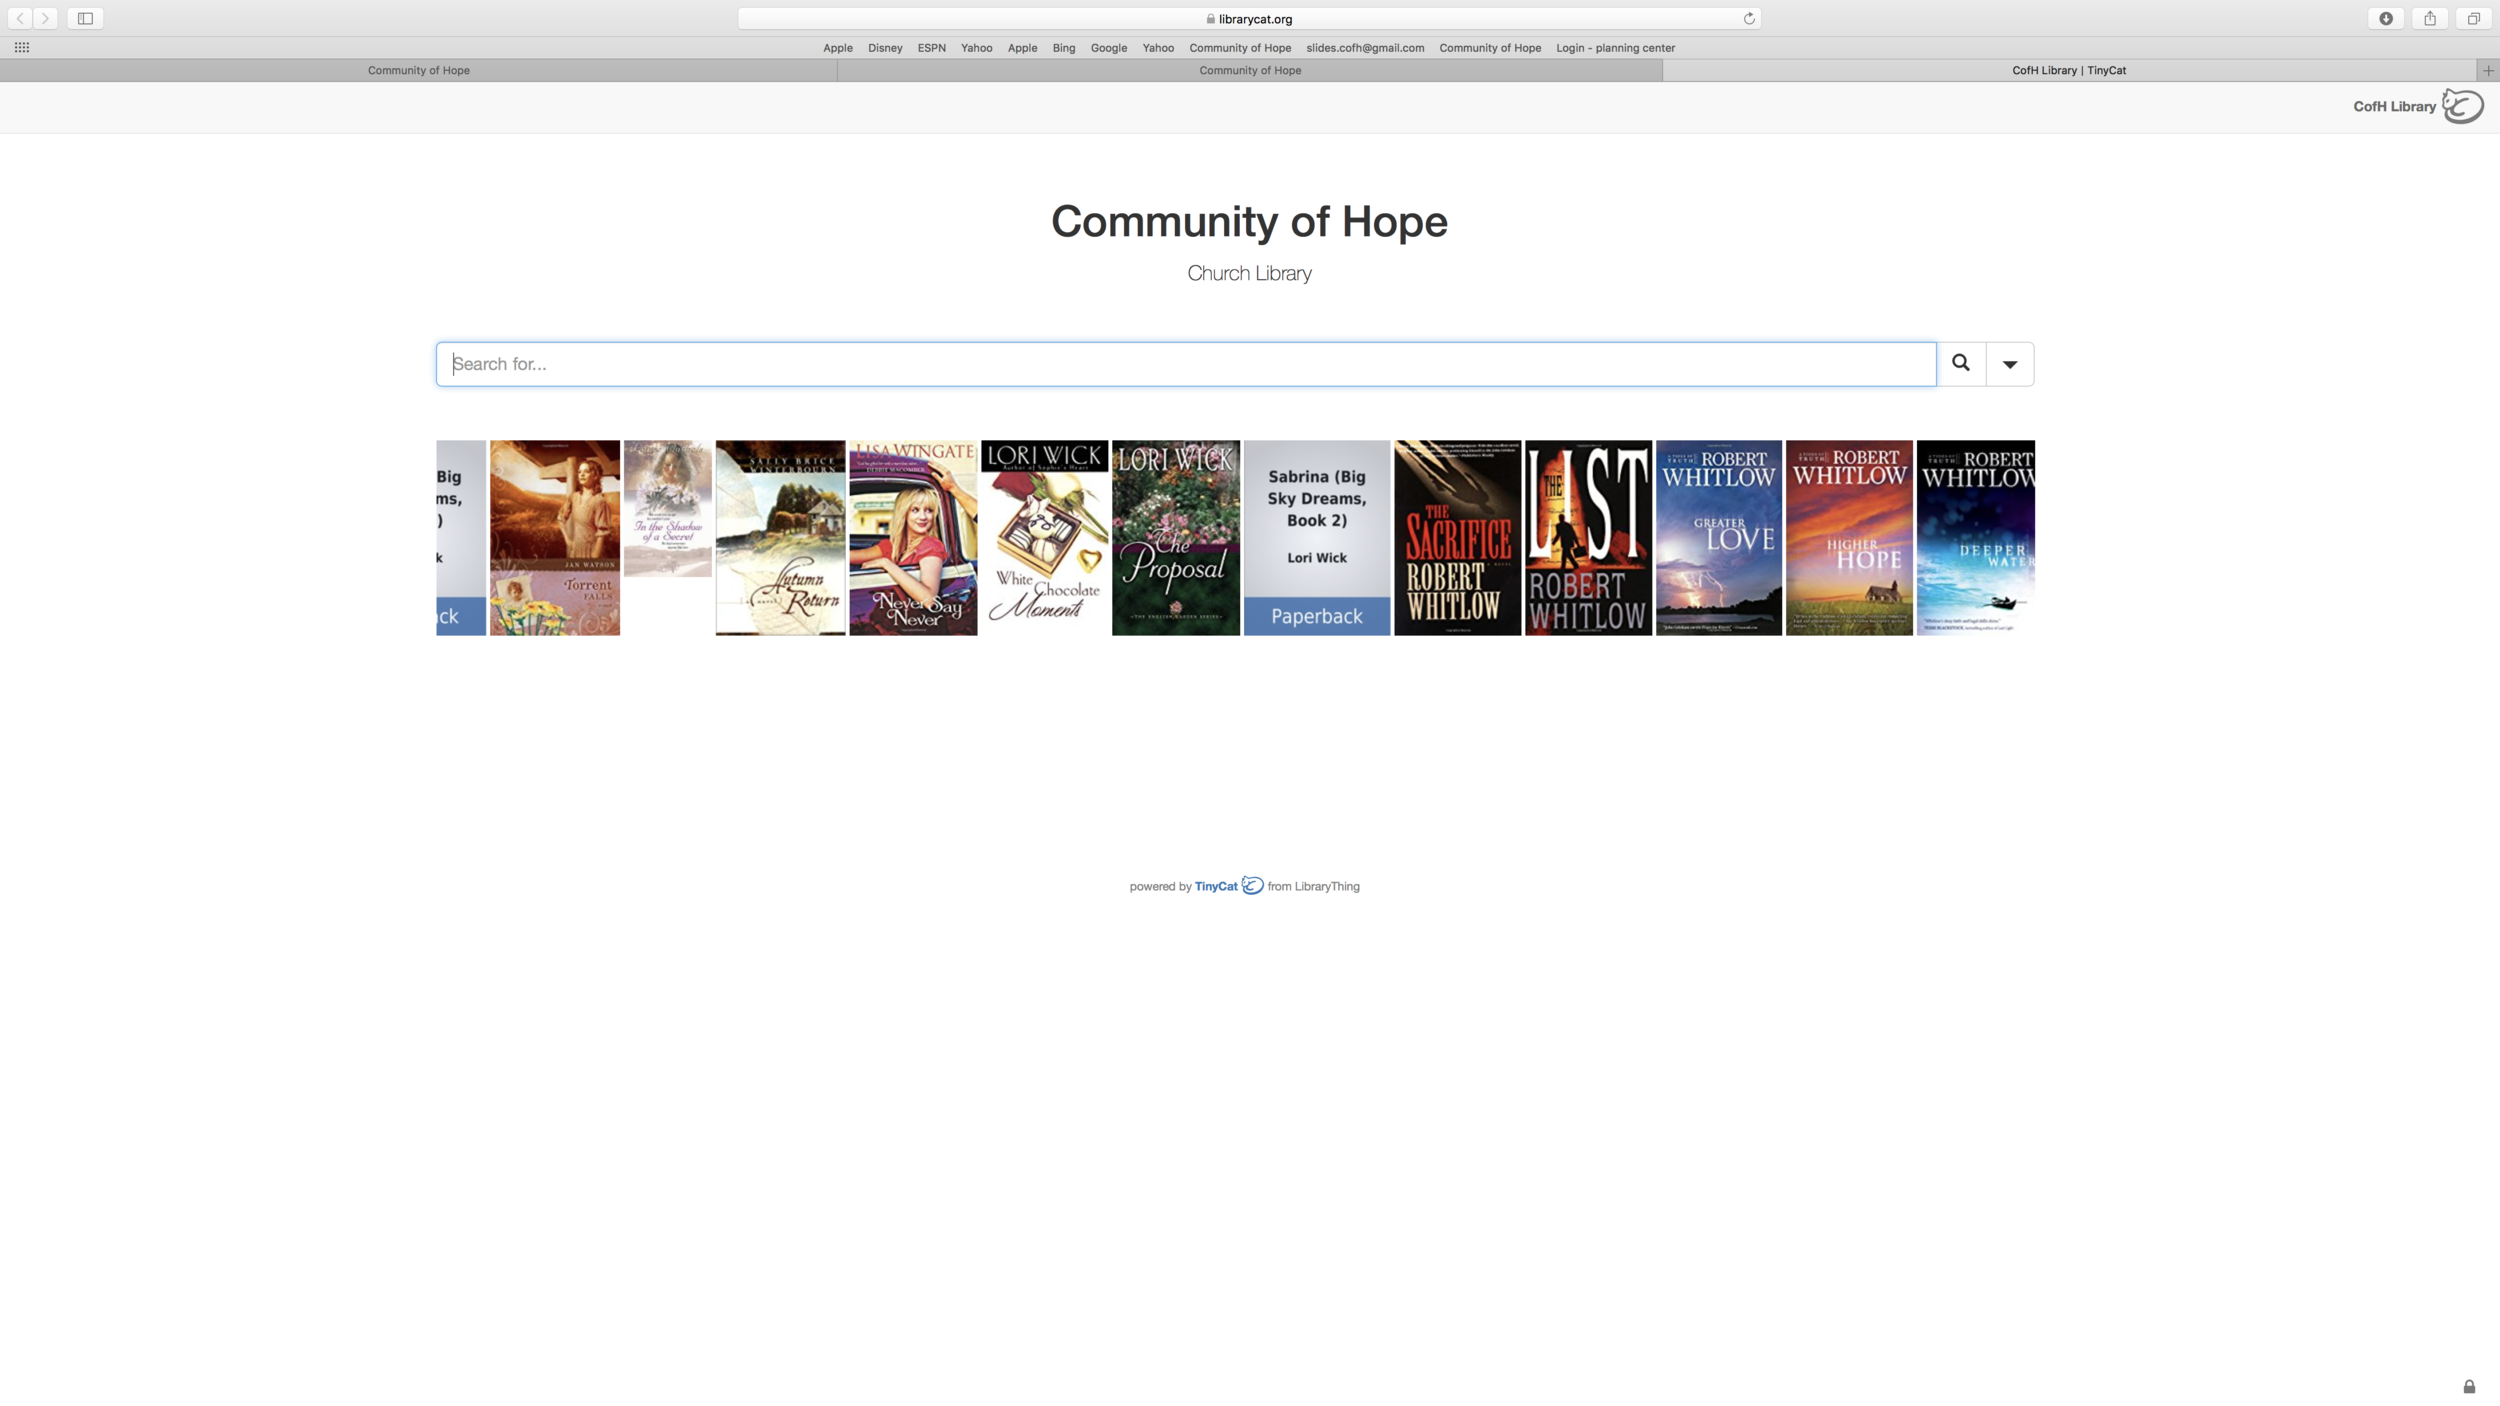 """Enter the book, subject, or genre that you are looking for in the search bar (ex. """"Christian living"""")."""